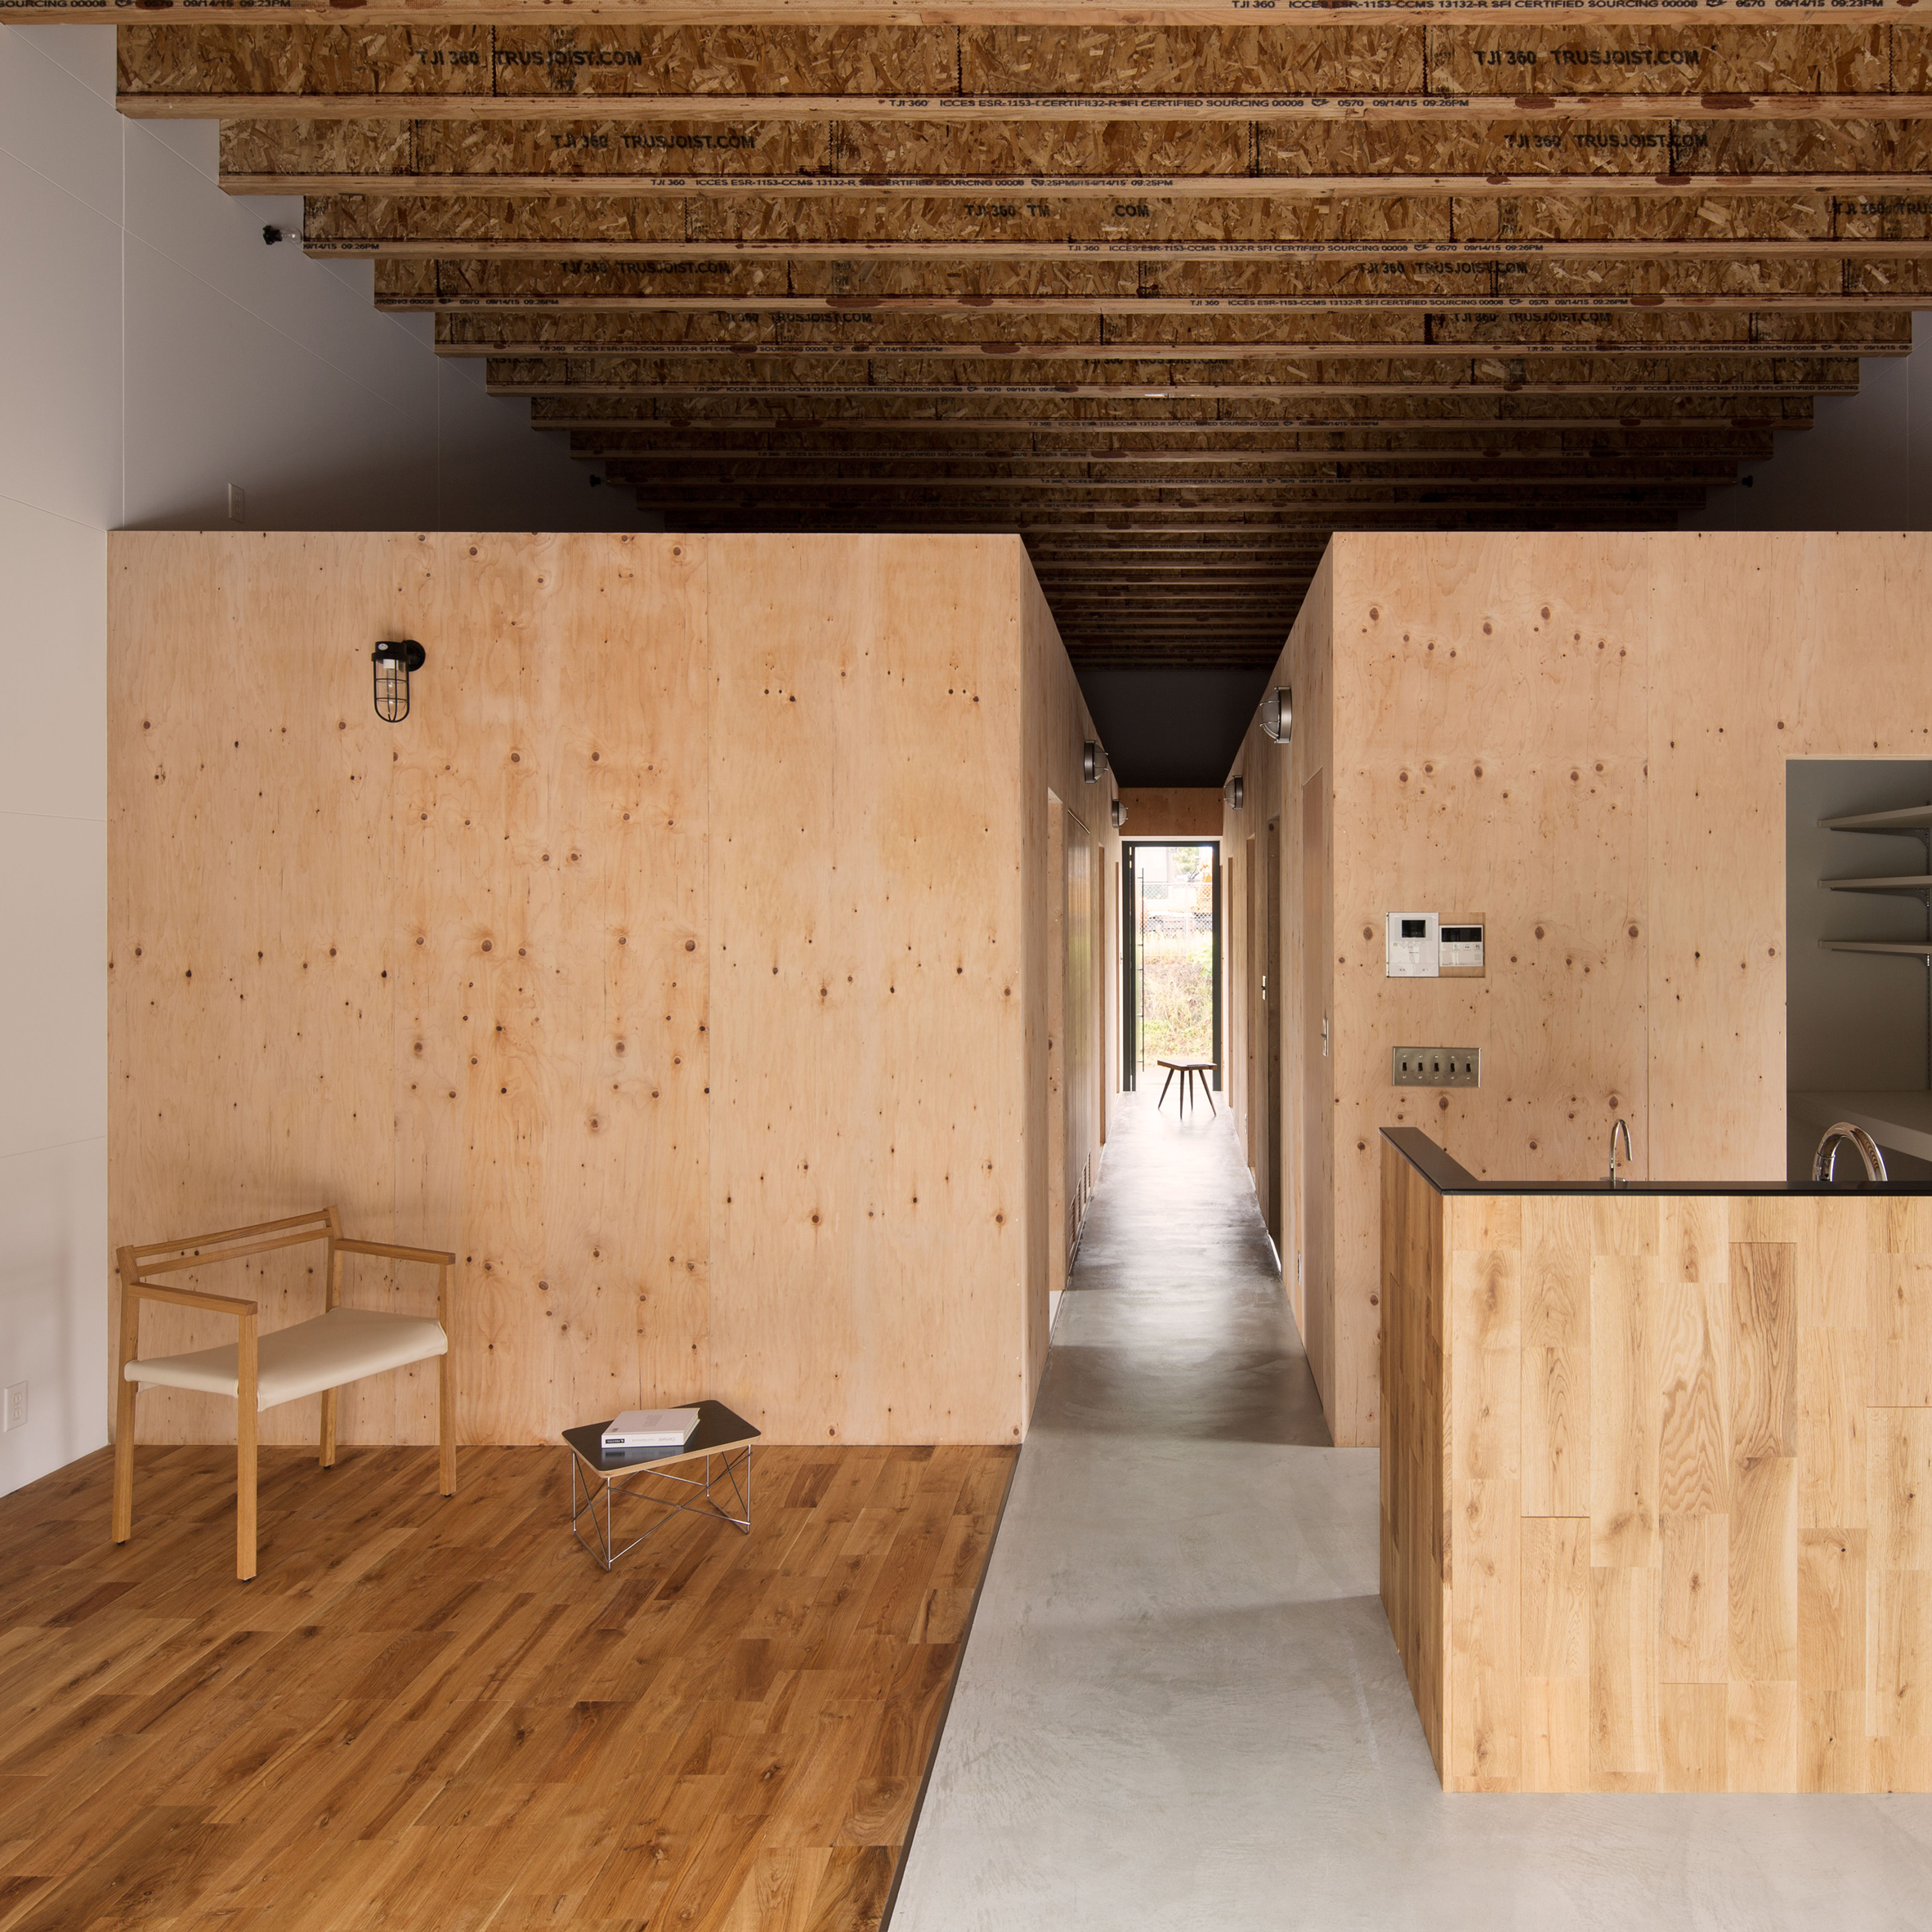 Wooden boxes define rooms and mezzanines in loft house by Wood architecture definition